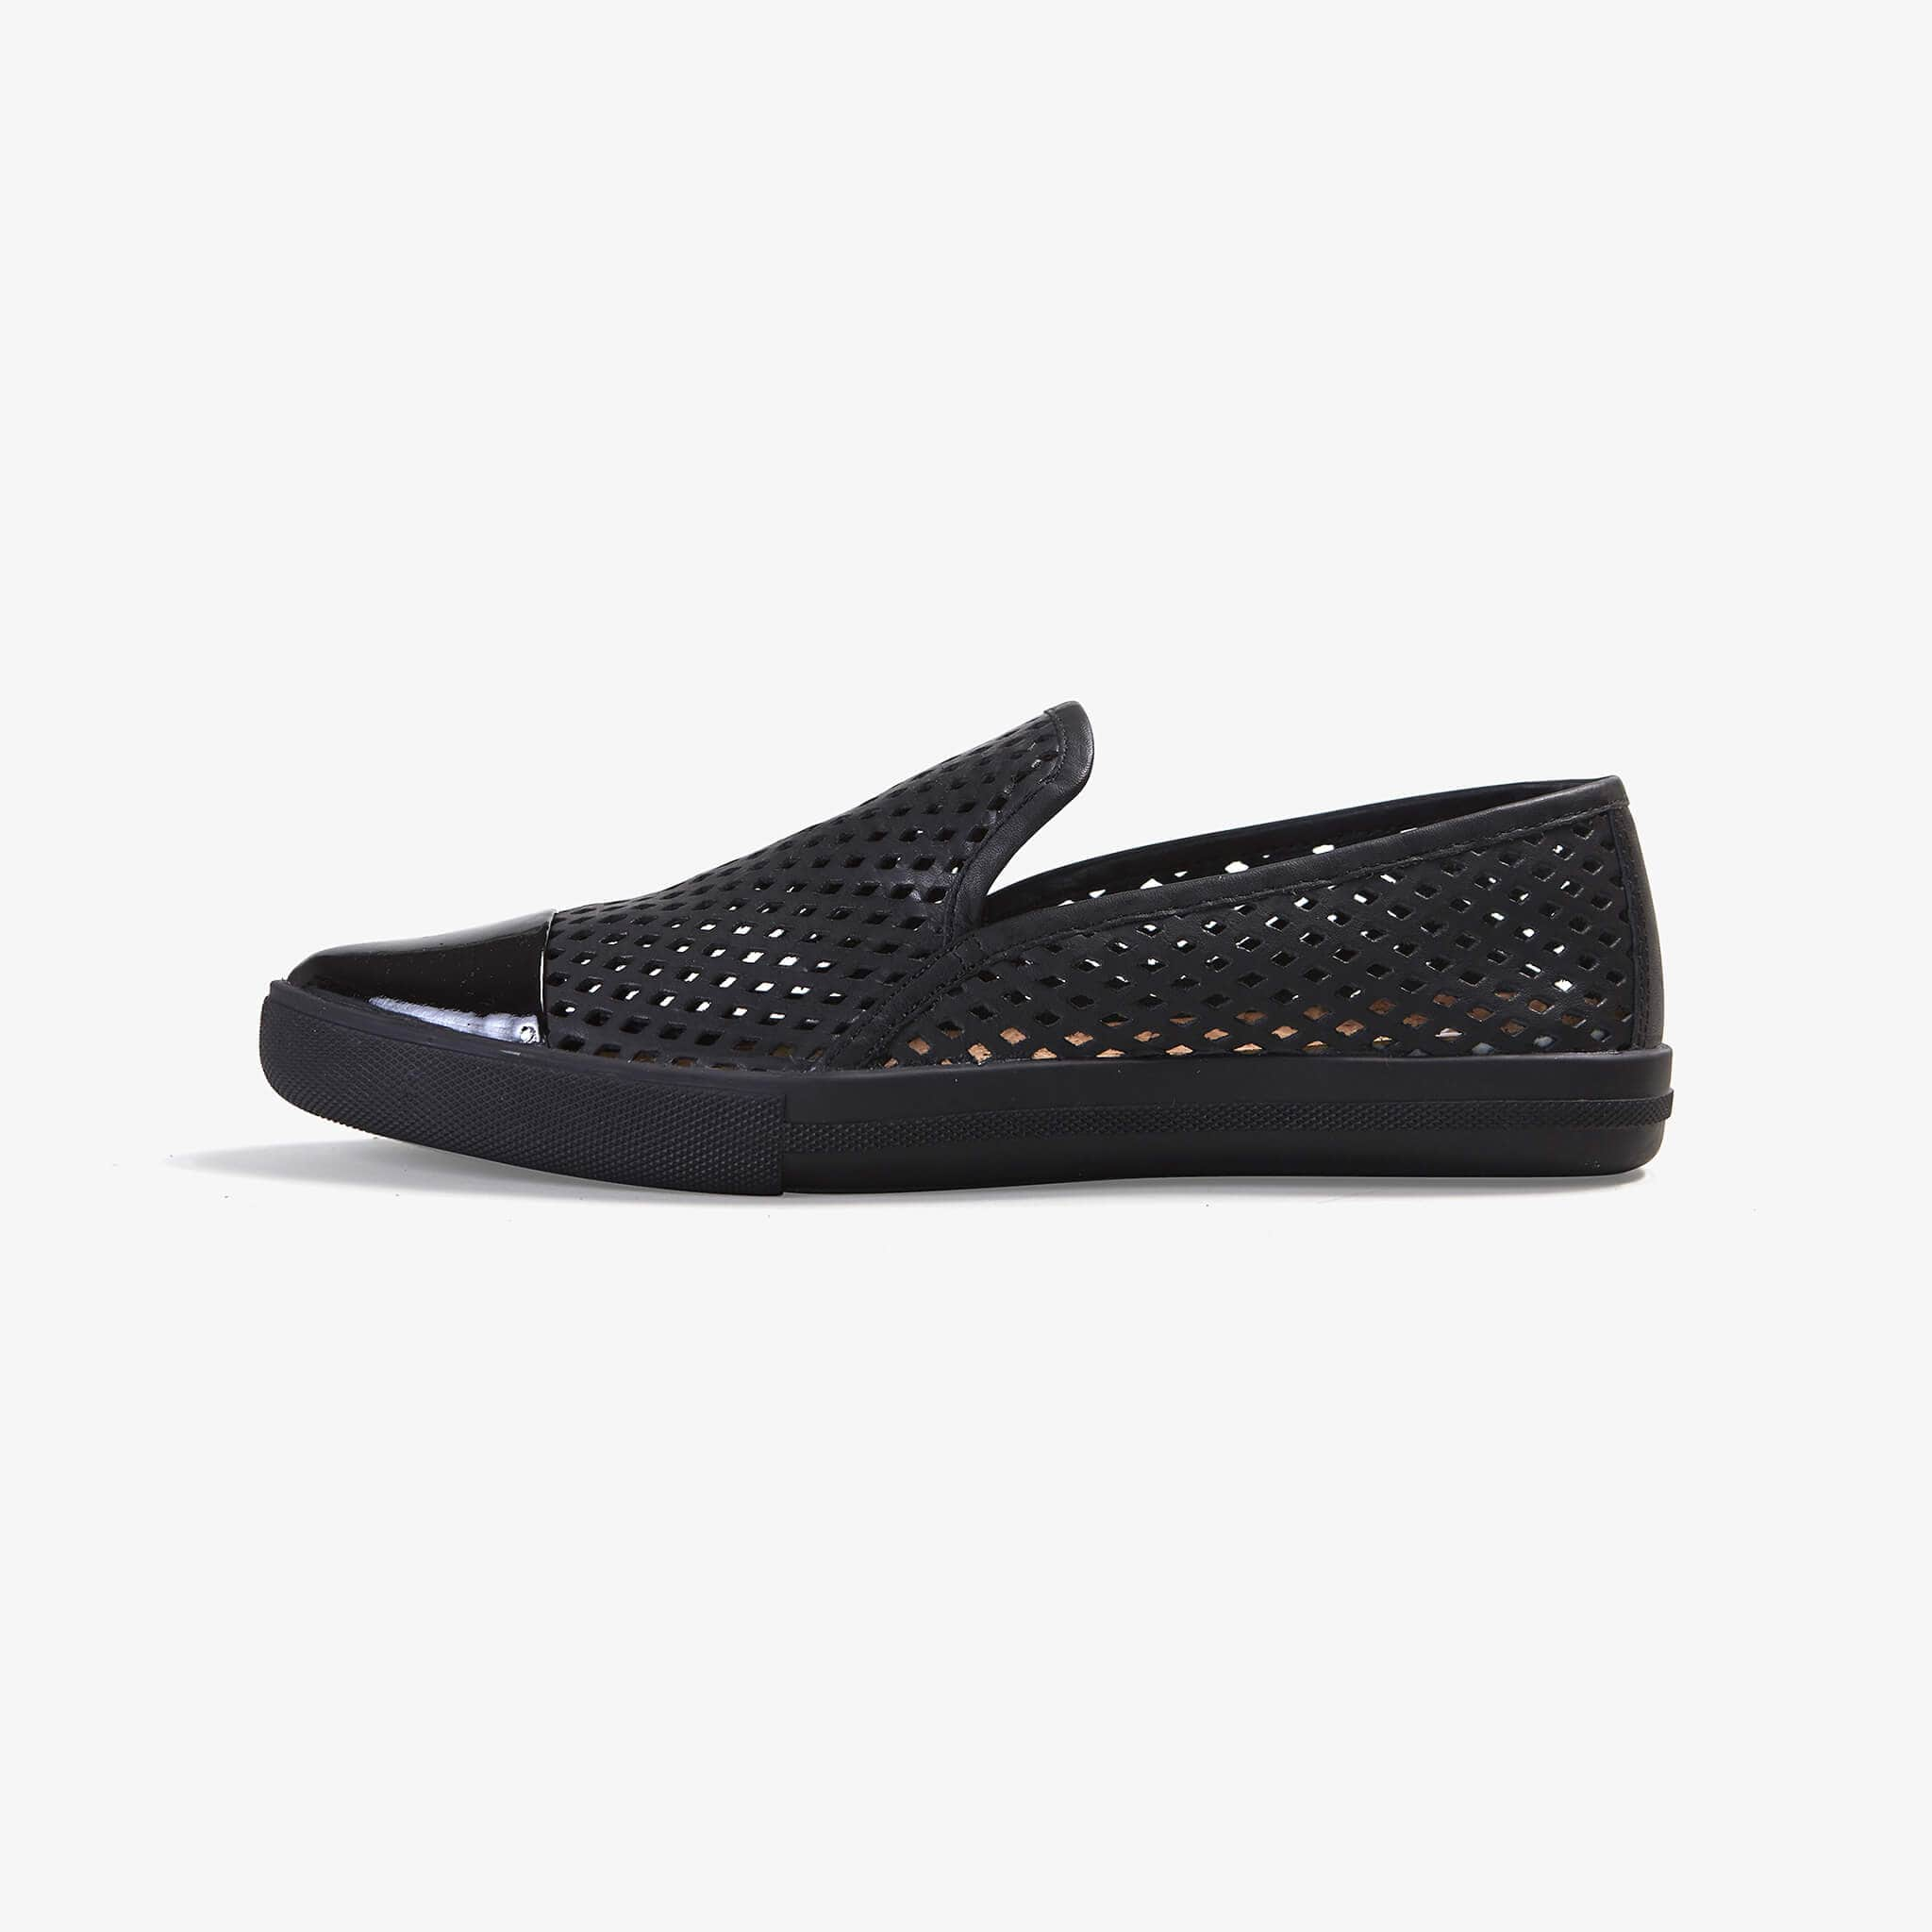 Jibs Slim Jet Black Royale + Onyx Slip On Sneaker Flat Shoe Side